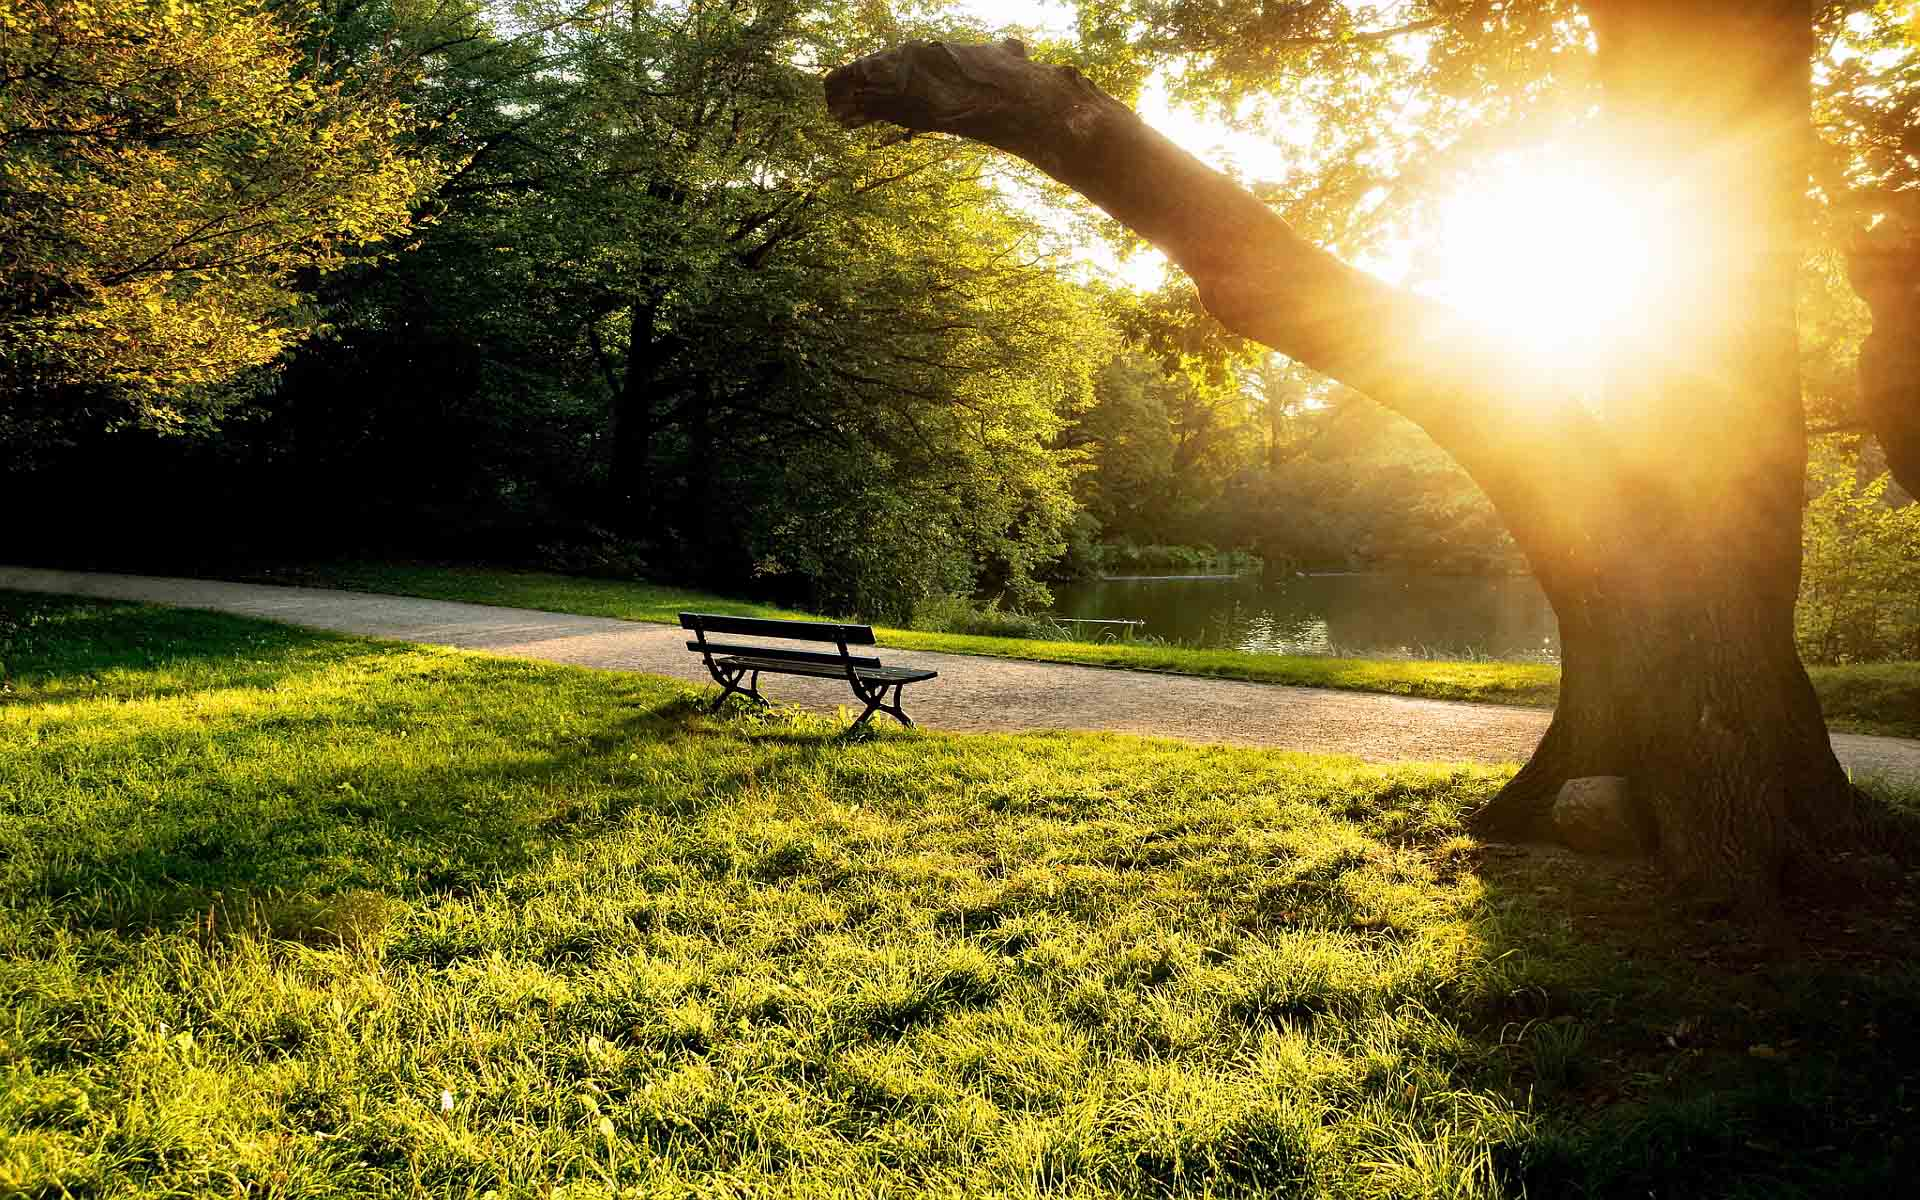 7025796-city-park-bench-sunset-1